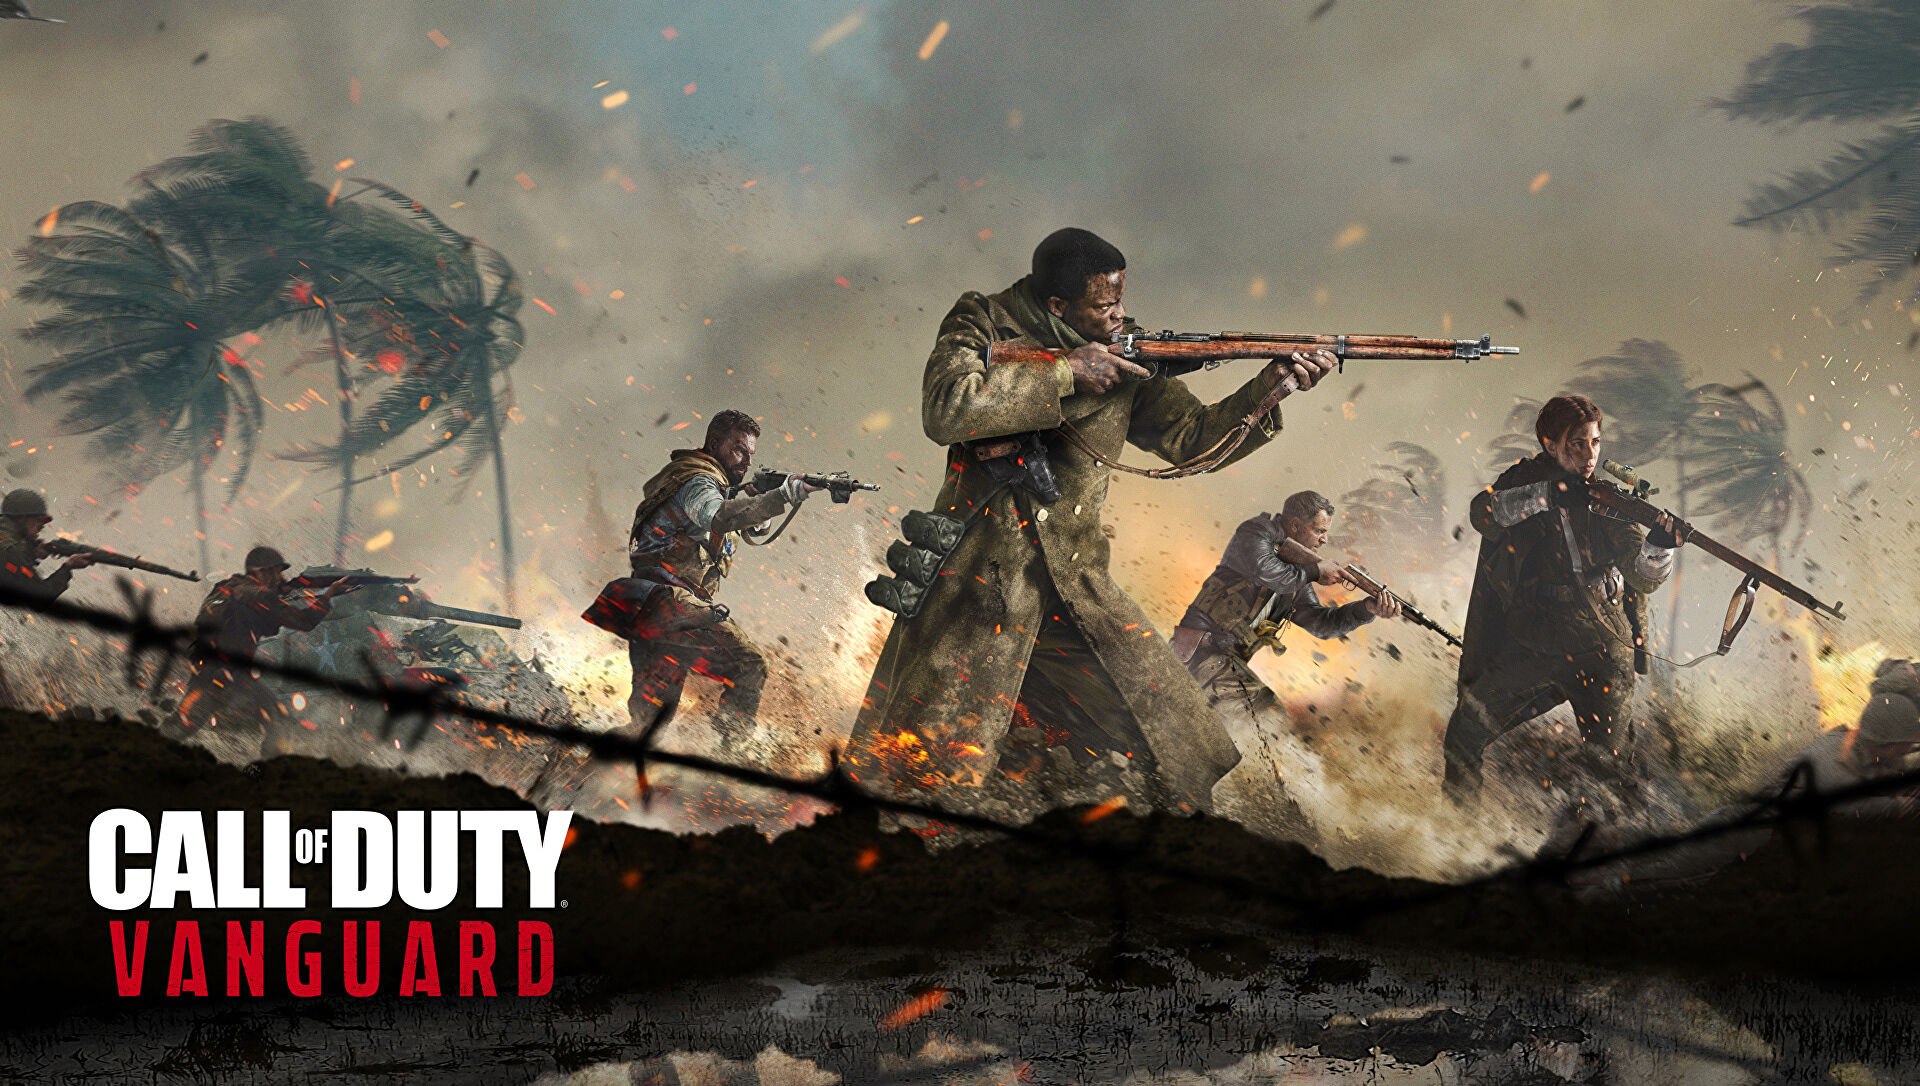 Call of Duty: Vanguard reveal event in Warzone will award players free loot    VG247